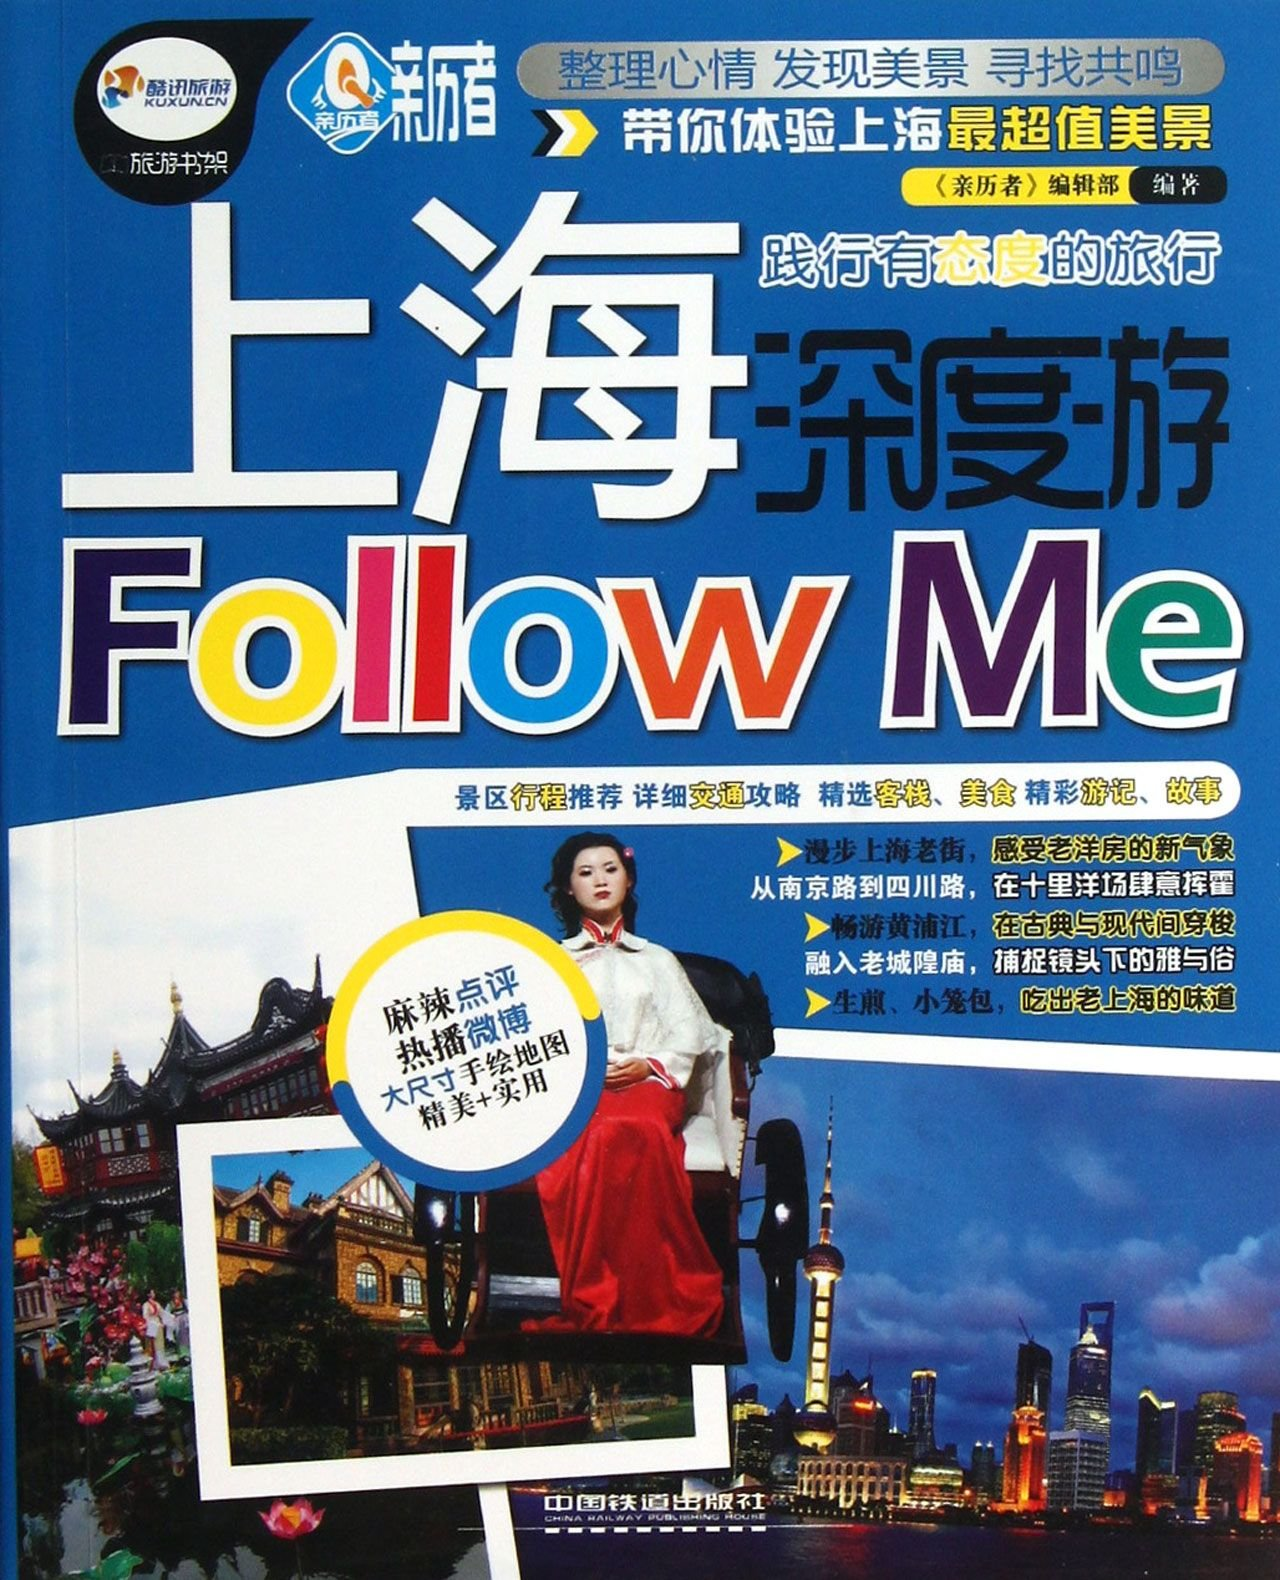 Download Follow Me to Thorough Tours in Shanghai (Chinese Edition) ebook